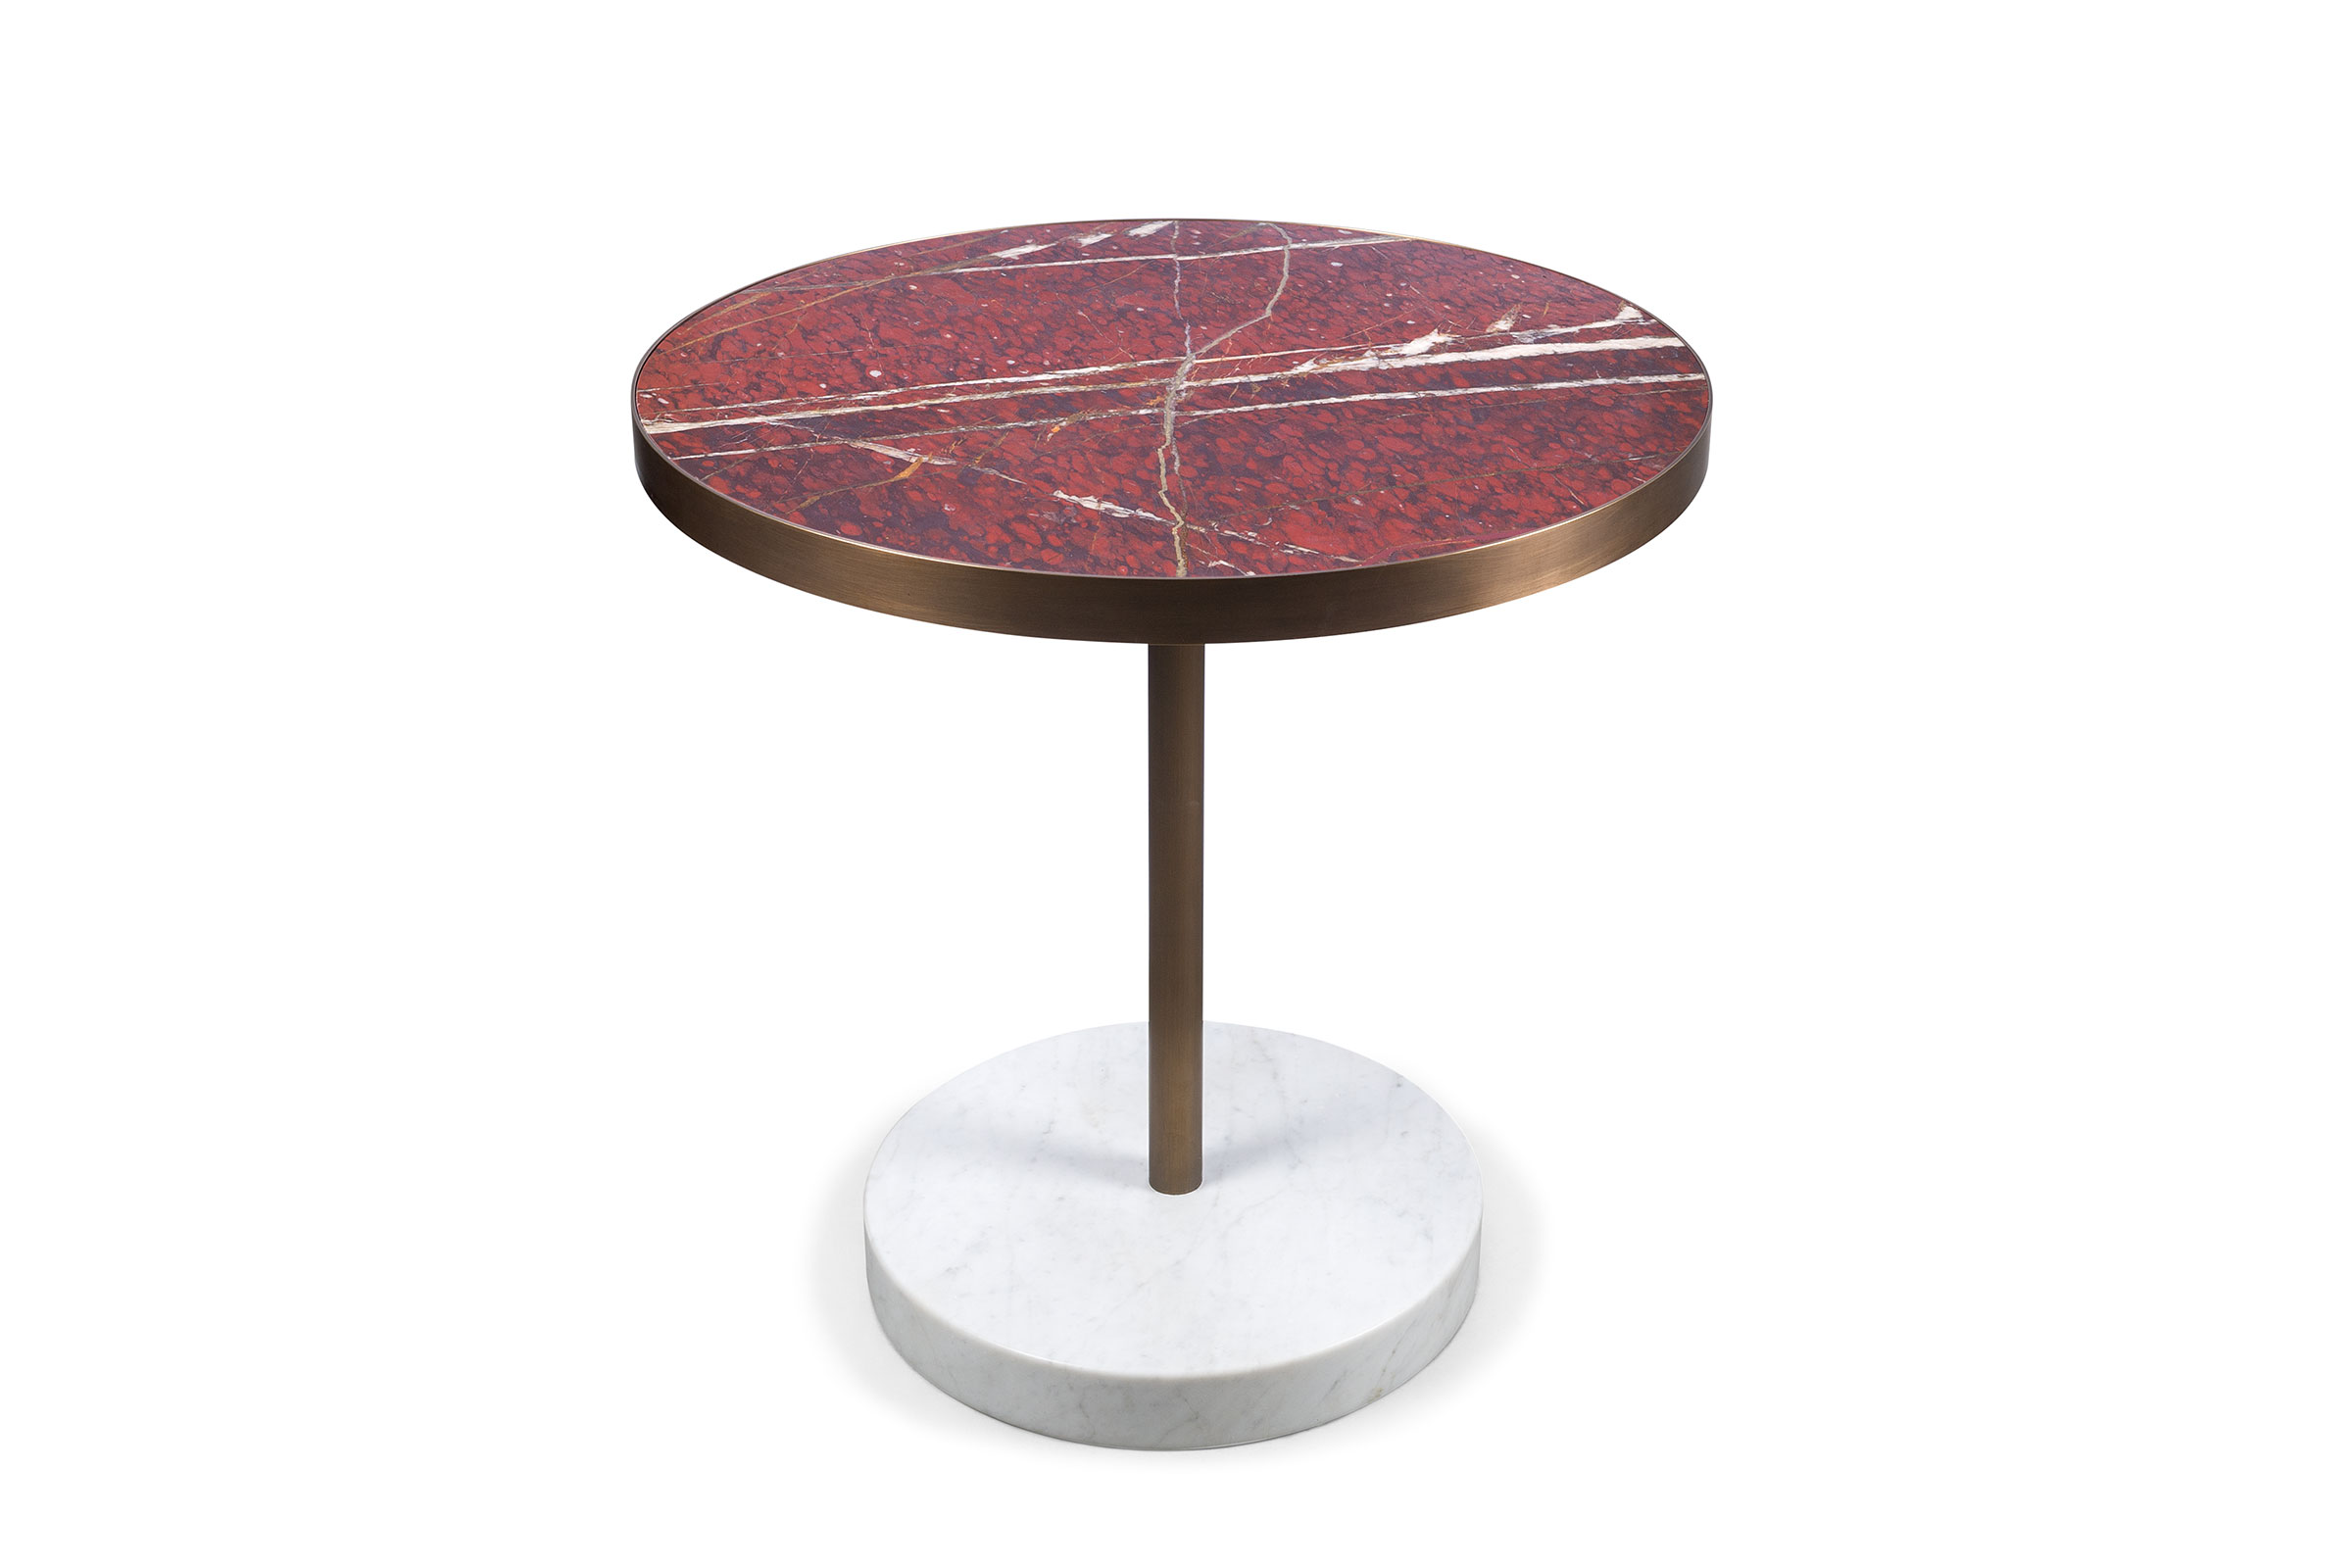 A Renè Bistrot table from the Lost Stones collection, designed by Piero Lissoni for Salvatori. Image courtesy of Salvatori